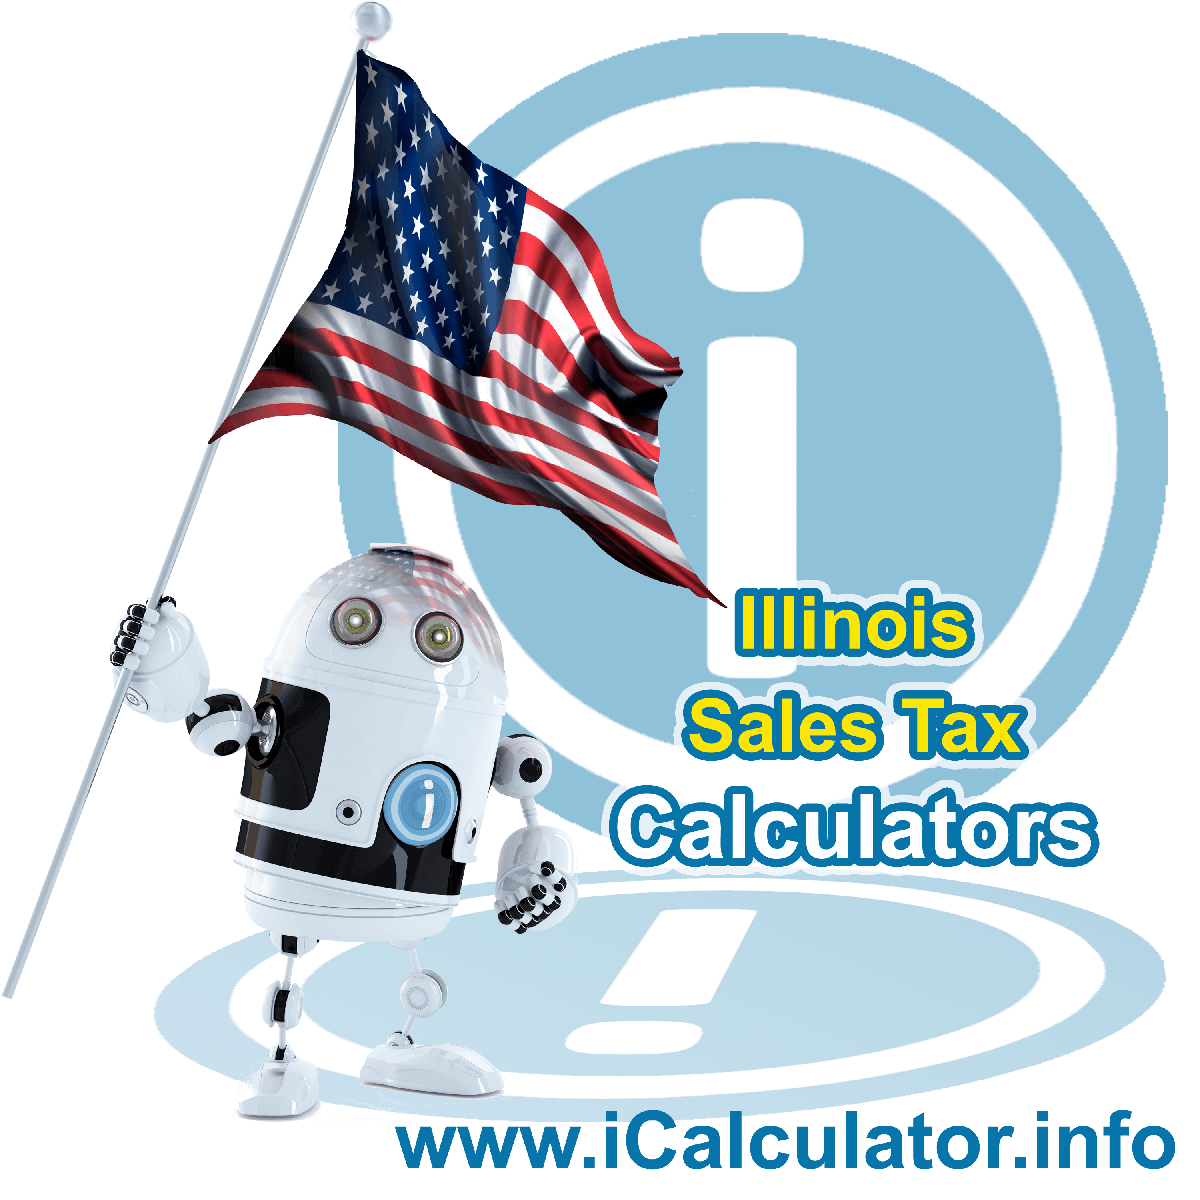 Nora Sales Rates: This image illustrates a calculator robot calculating Nora sales tax manually using the Nora Sales Tax Formula. You can use this information to calculate Nora Sales Tax manually or use the Nora Sales Tax Calculator to calculate sales tax online.